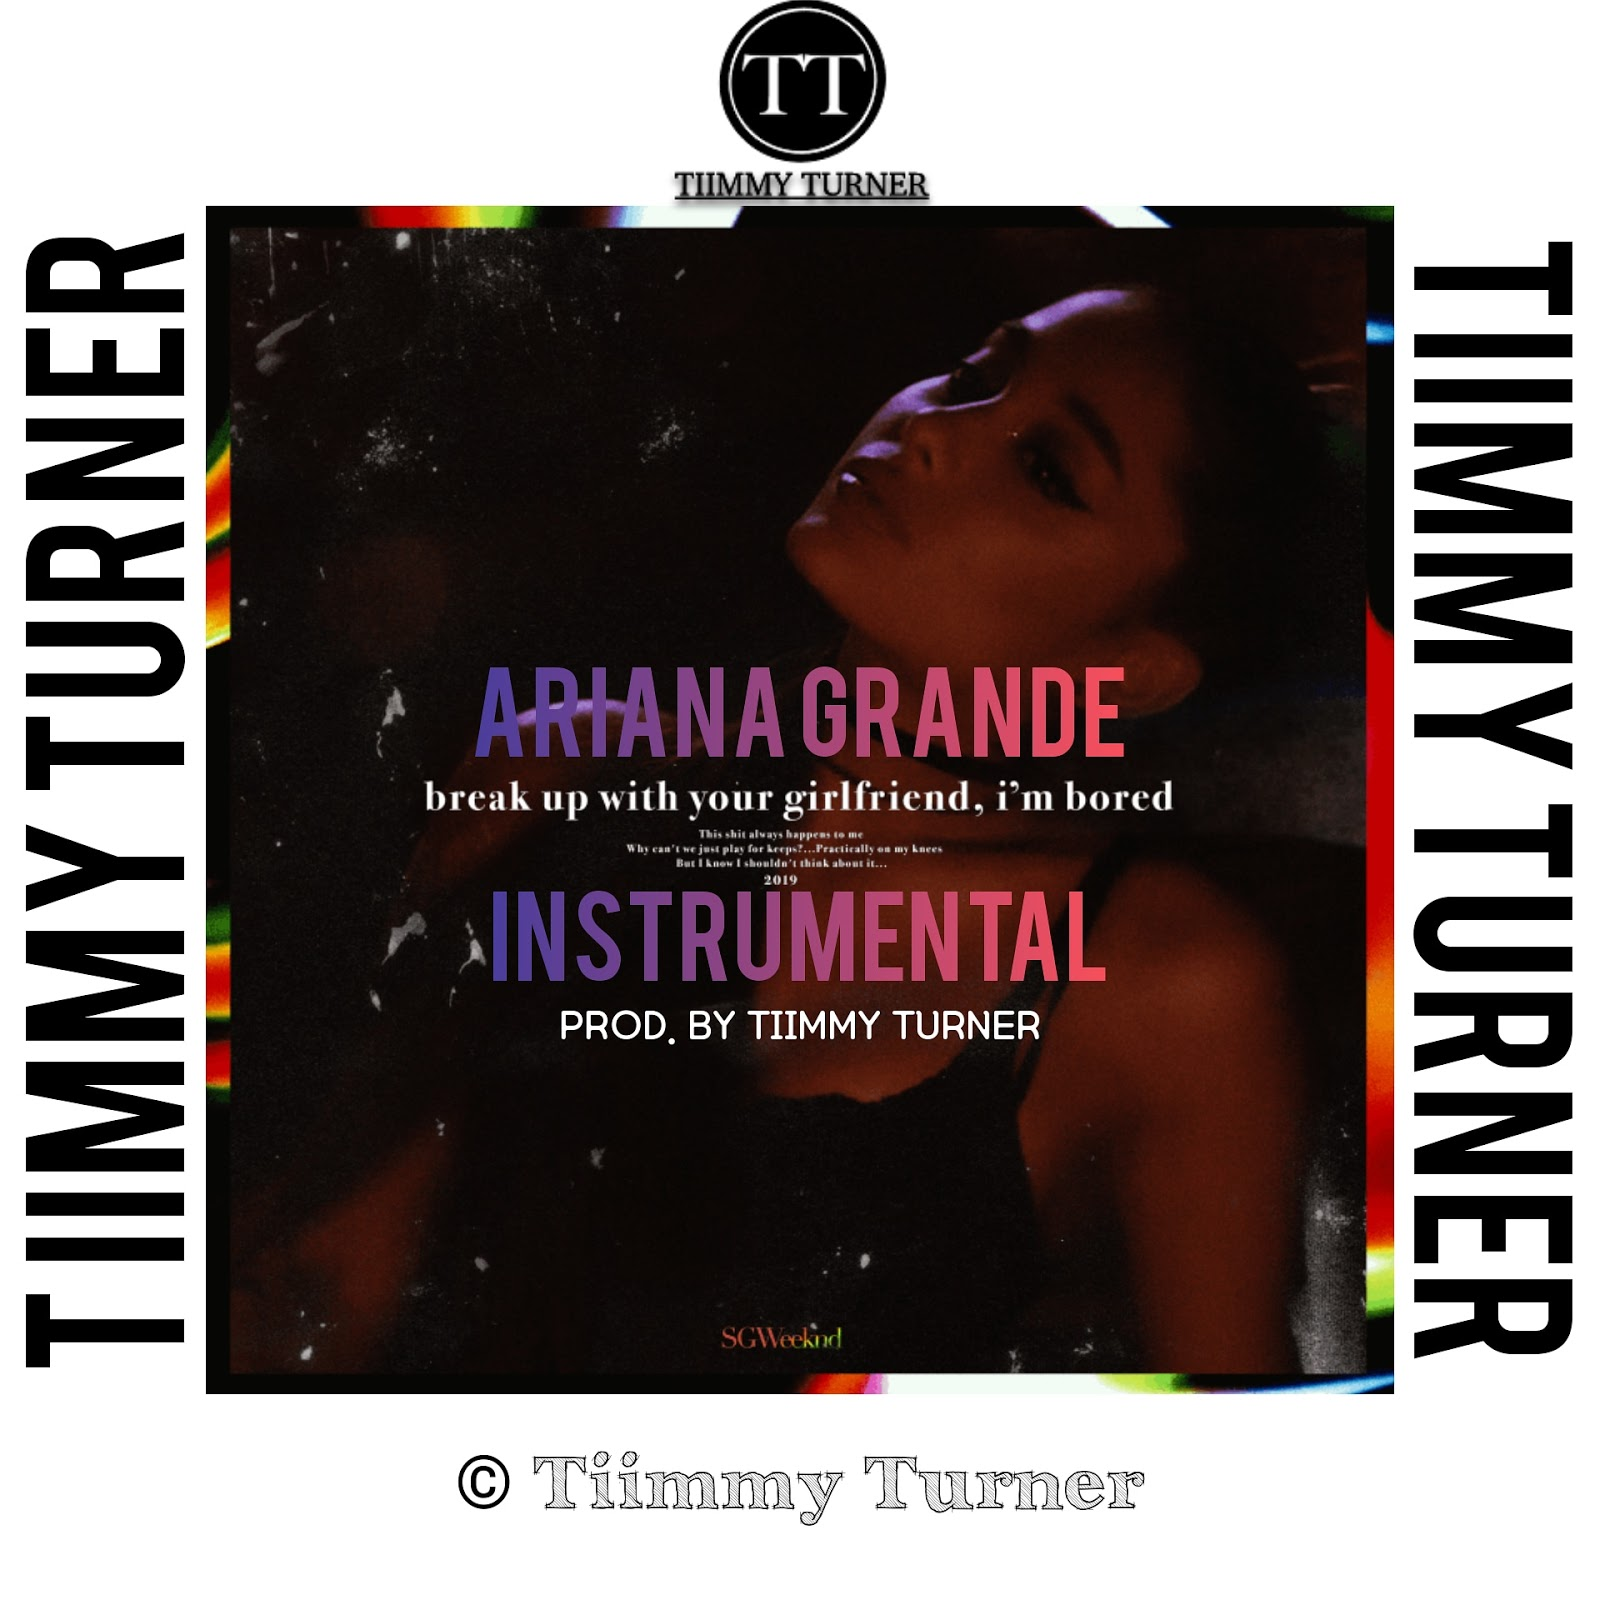 [INSTRUMENTAL] Ariana Grande – Break Up With Your Girlfriend I'm Bored (Prod. By Tiimmy Turner)